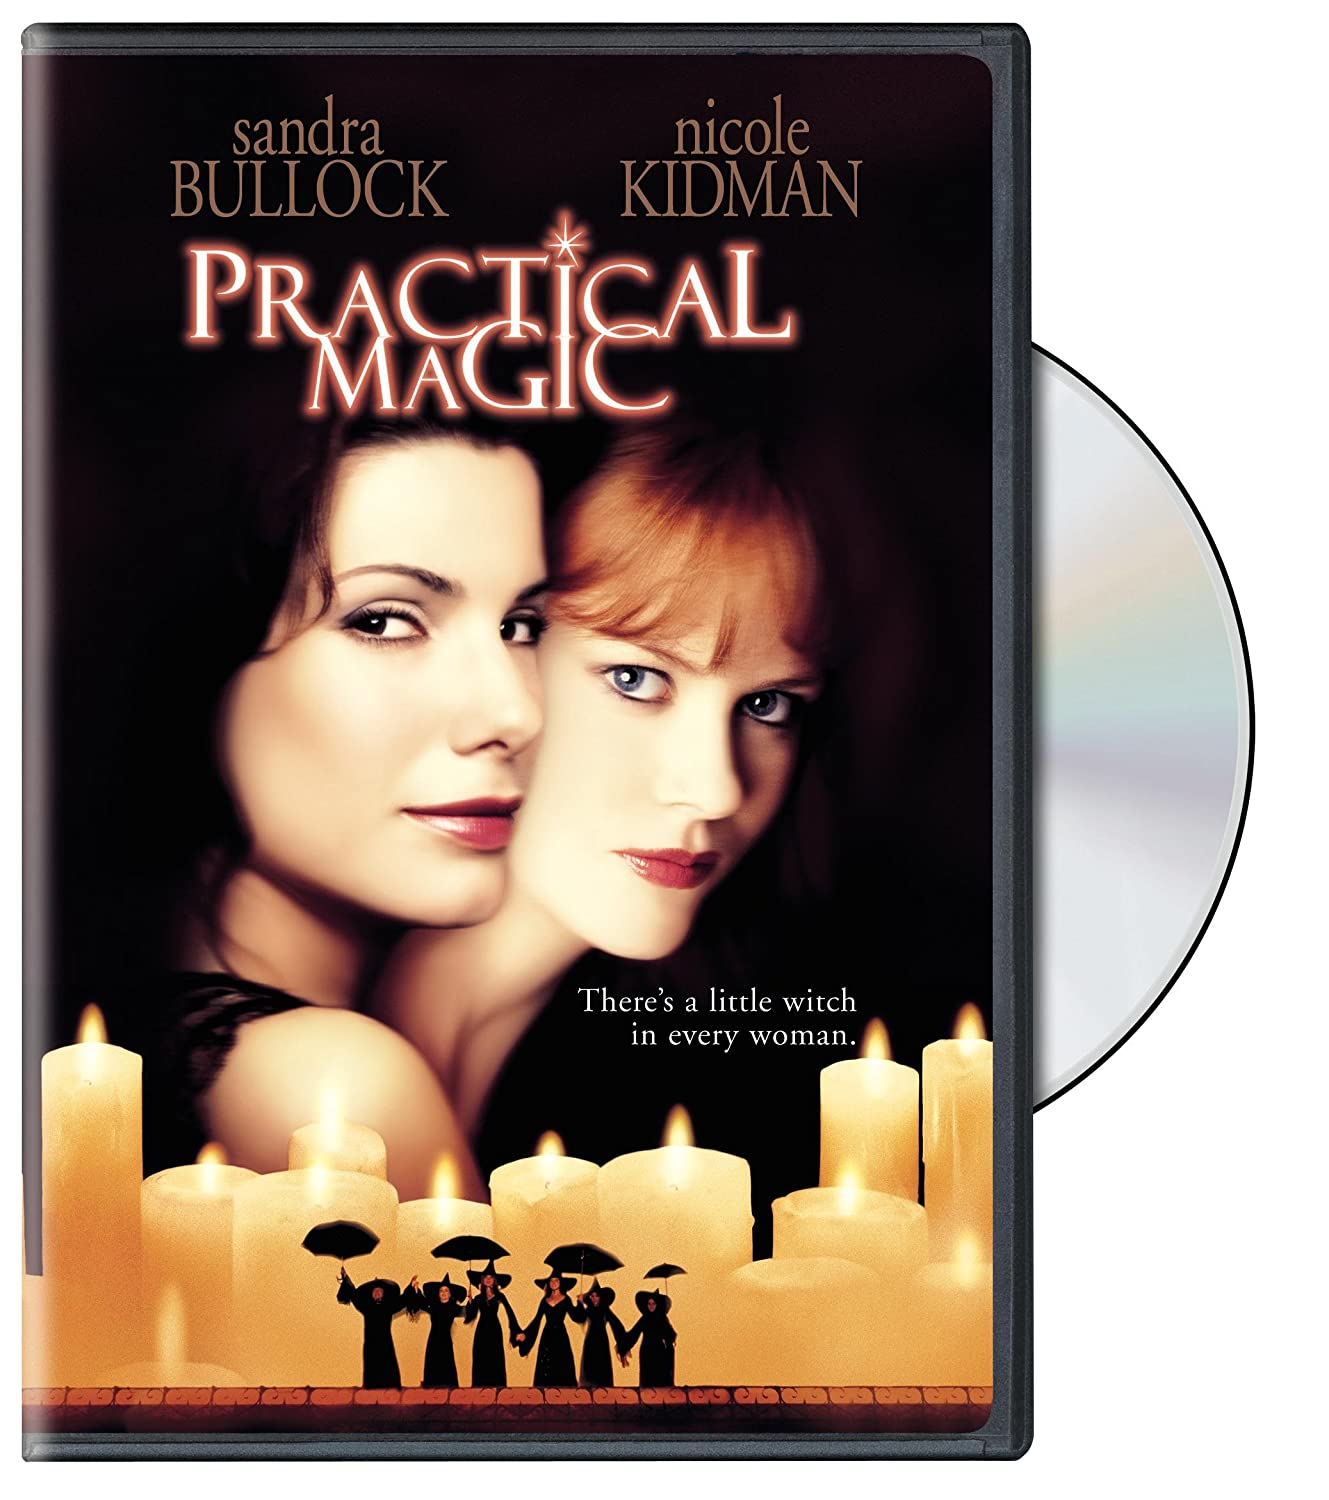 Image Result For Practical Magic Is A Romantic Comedy Film Based On The Novel Of The Same Name By